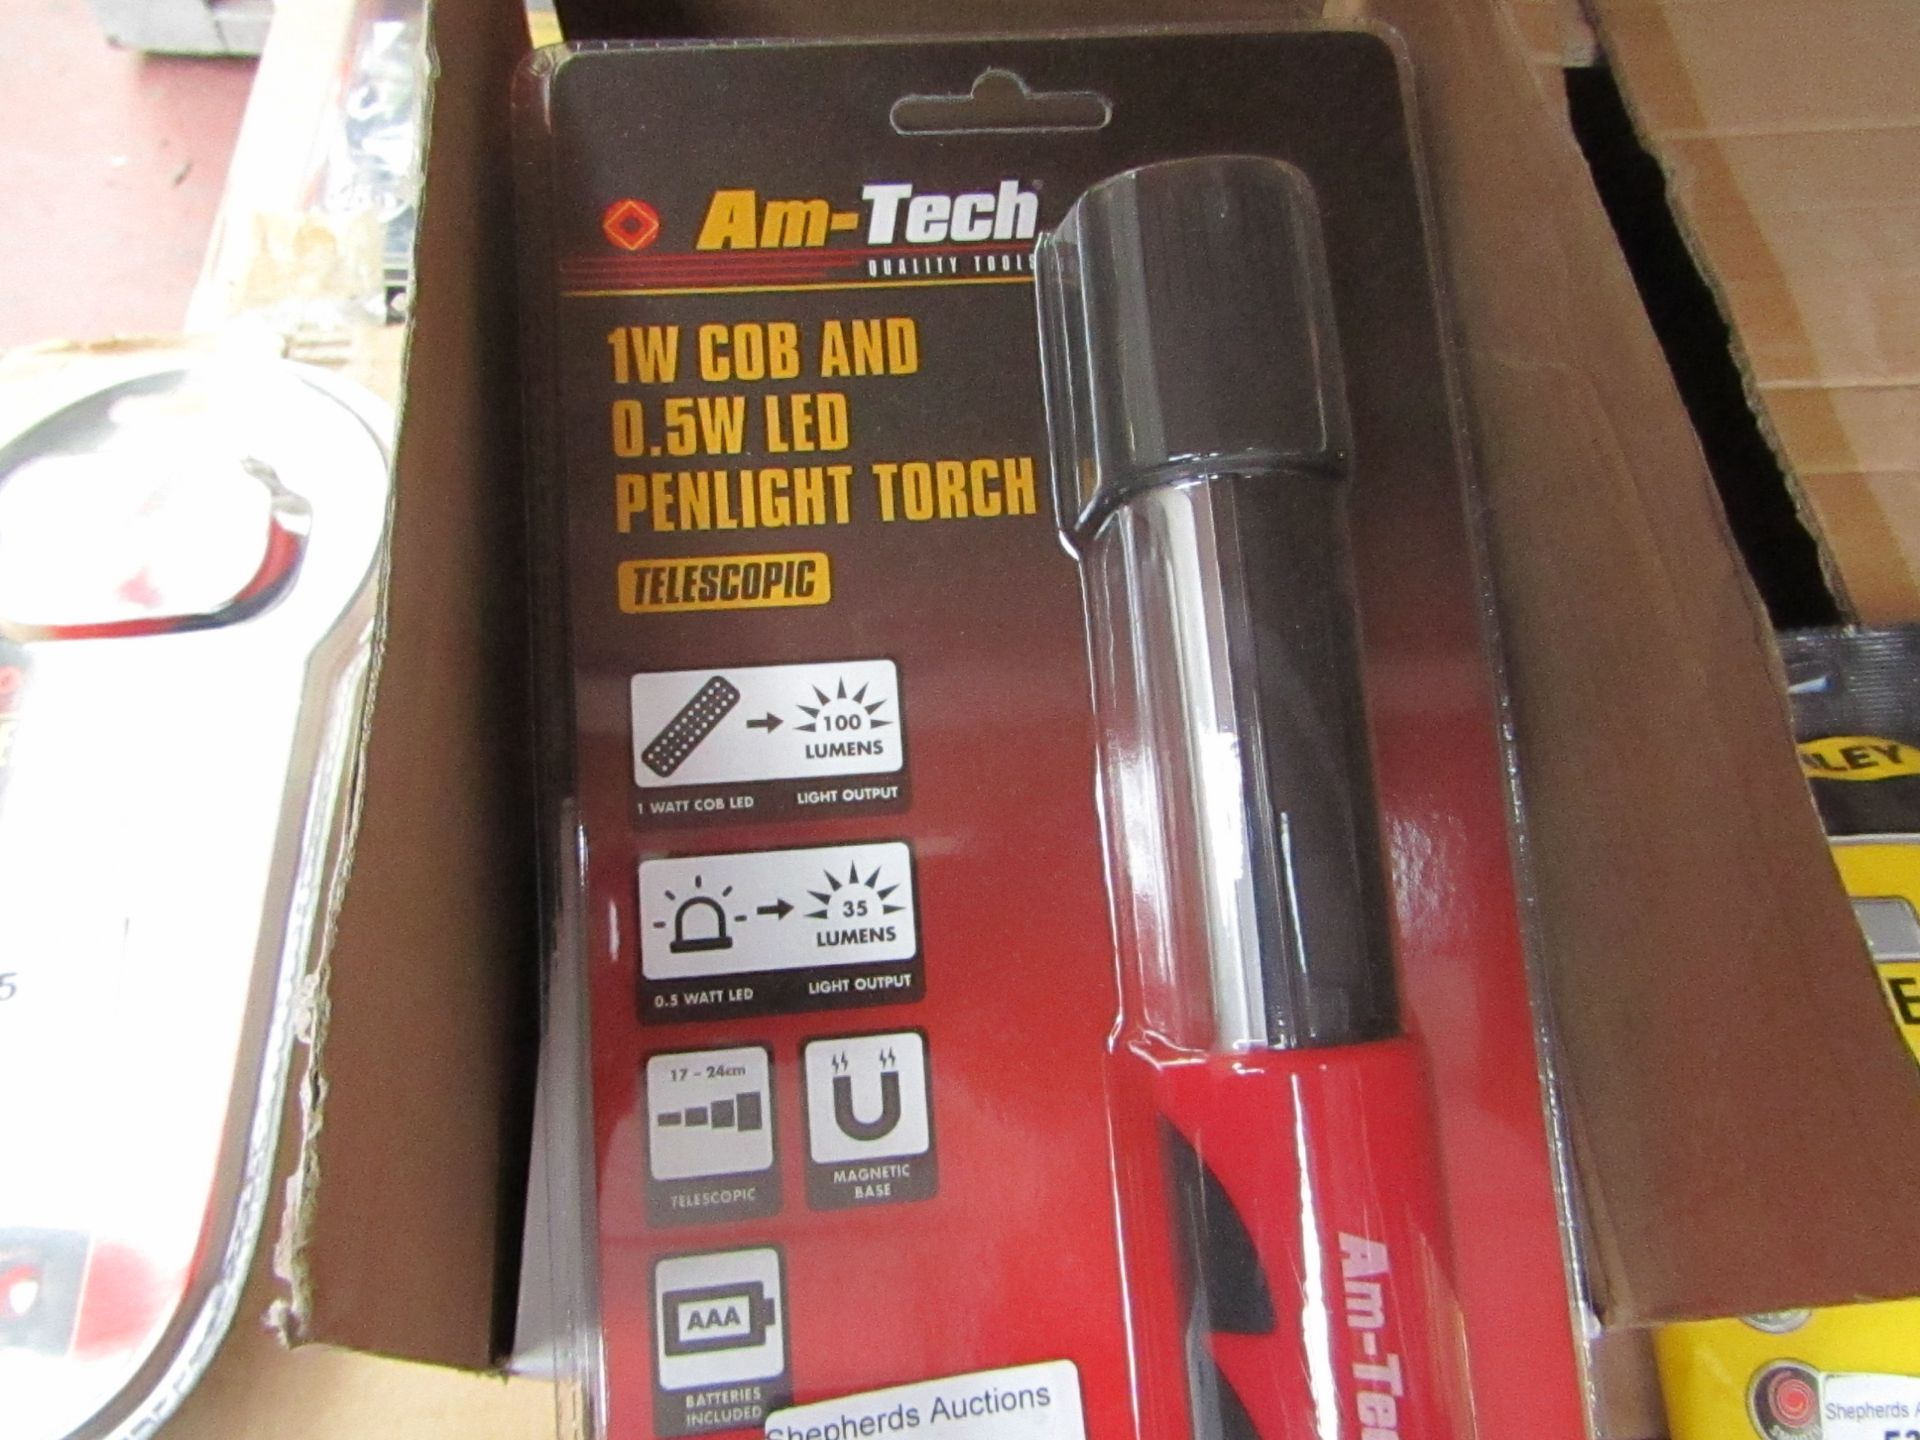 Lot 50 - Am-Tech - 1W Cob & 0.5W LED Penlight Touch - New & Packaged.